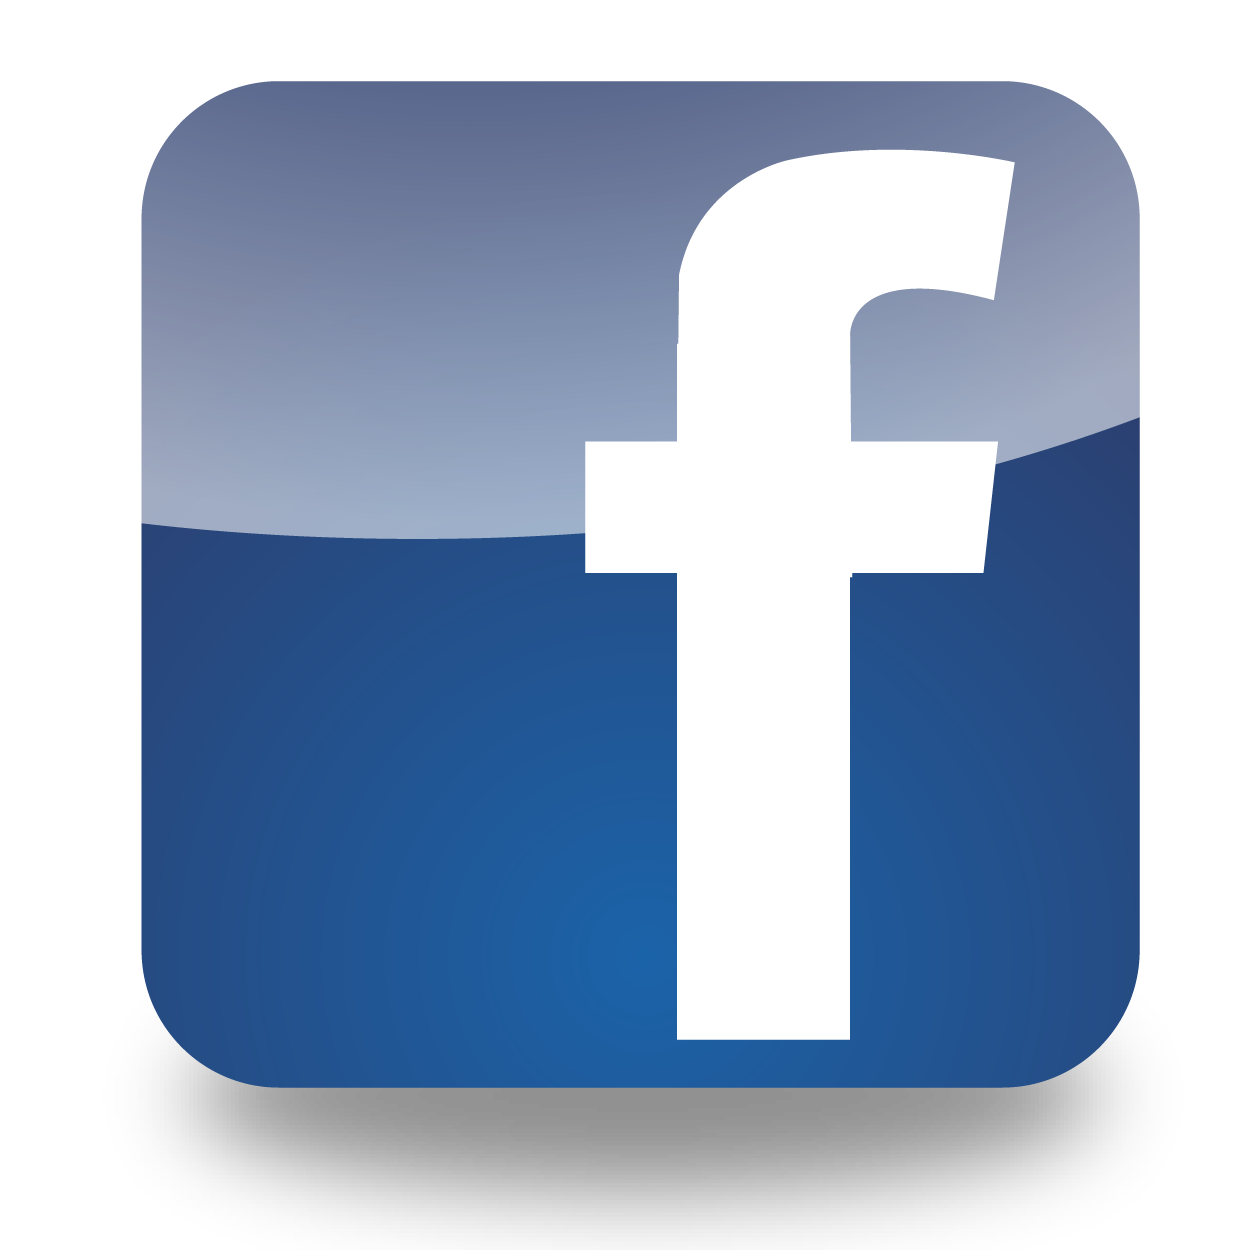 how to add a link to afacebook image